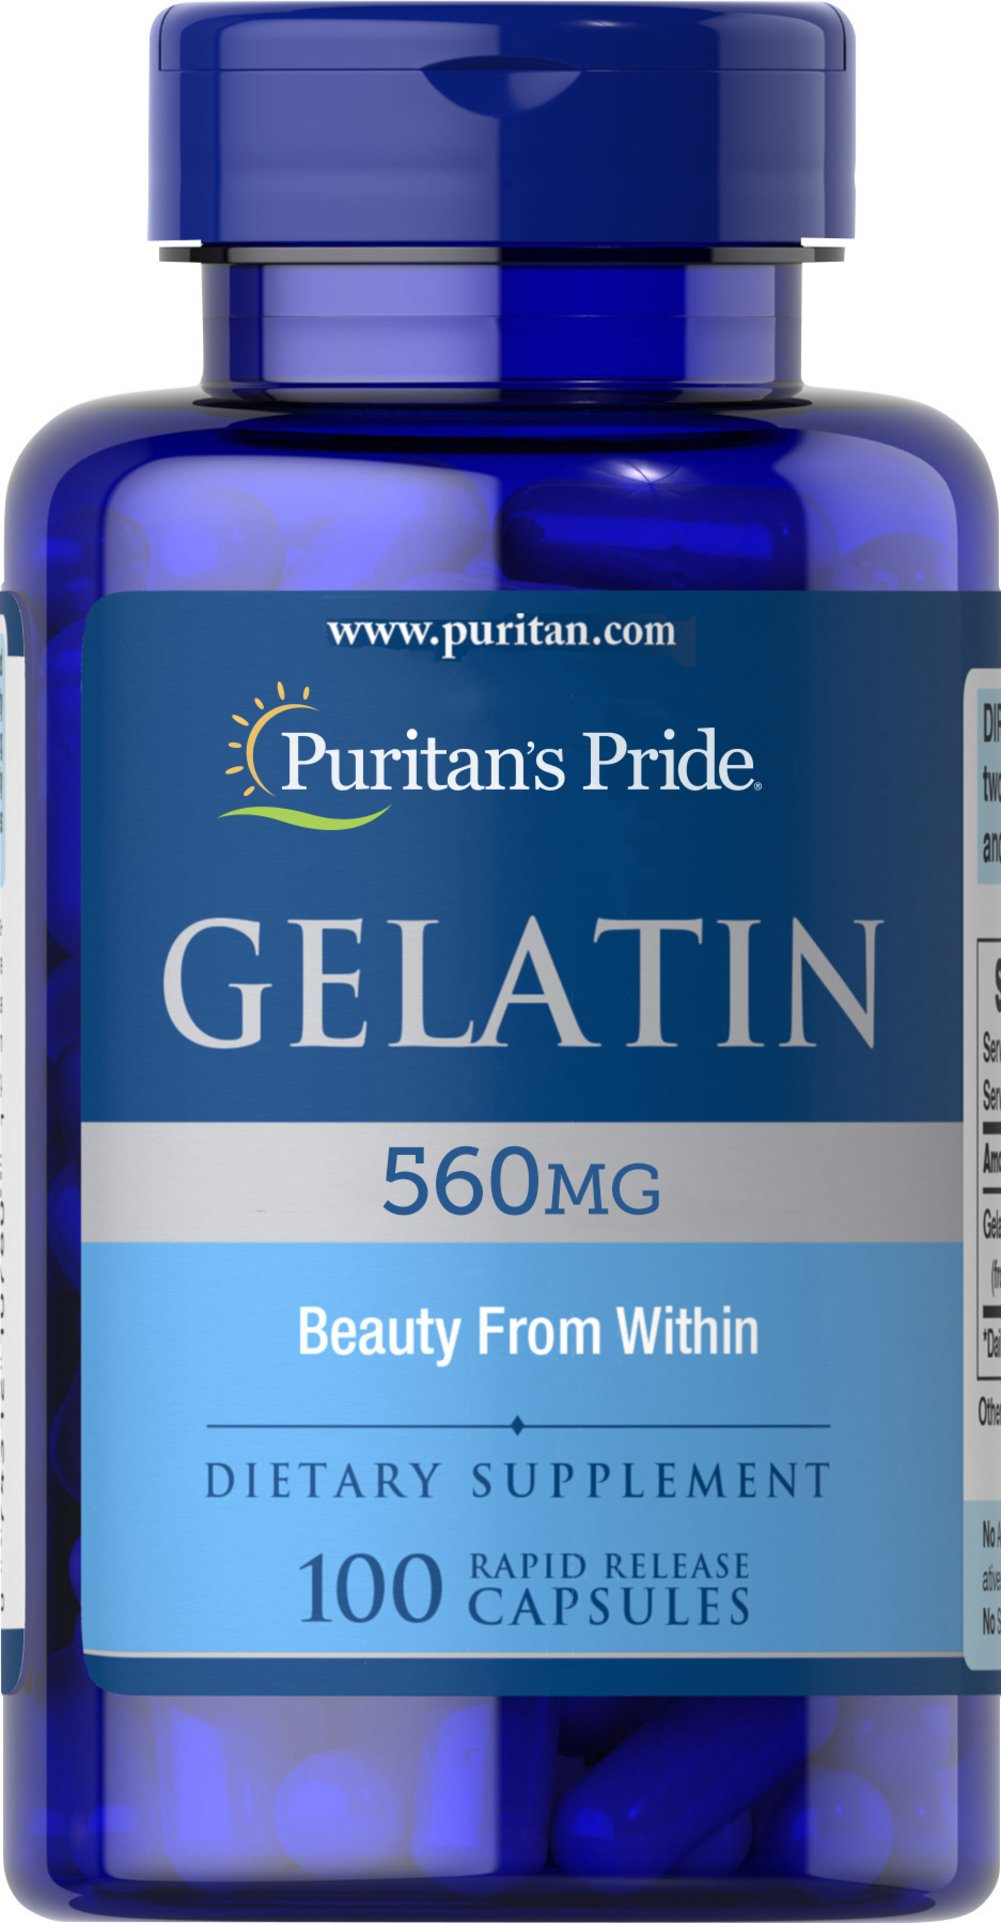 Gelatin 650 mg <p>Supports the Beauty of Nails**</p><p>An active lifestyle, harsh detergents, on-the-run nutrition - all can have an effect on the health of your nails.   Gelatin is one of the raw materials for collagen, the building block for strong, healthy nails.** As a supplement, Gelatin supports the beauty of your nails.**</p> 100 Capsules 650 mg $8.99